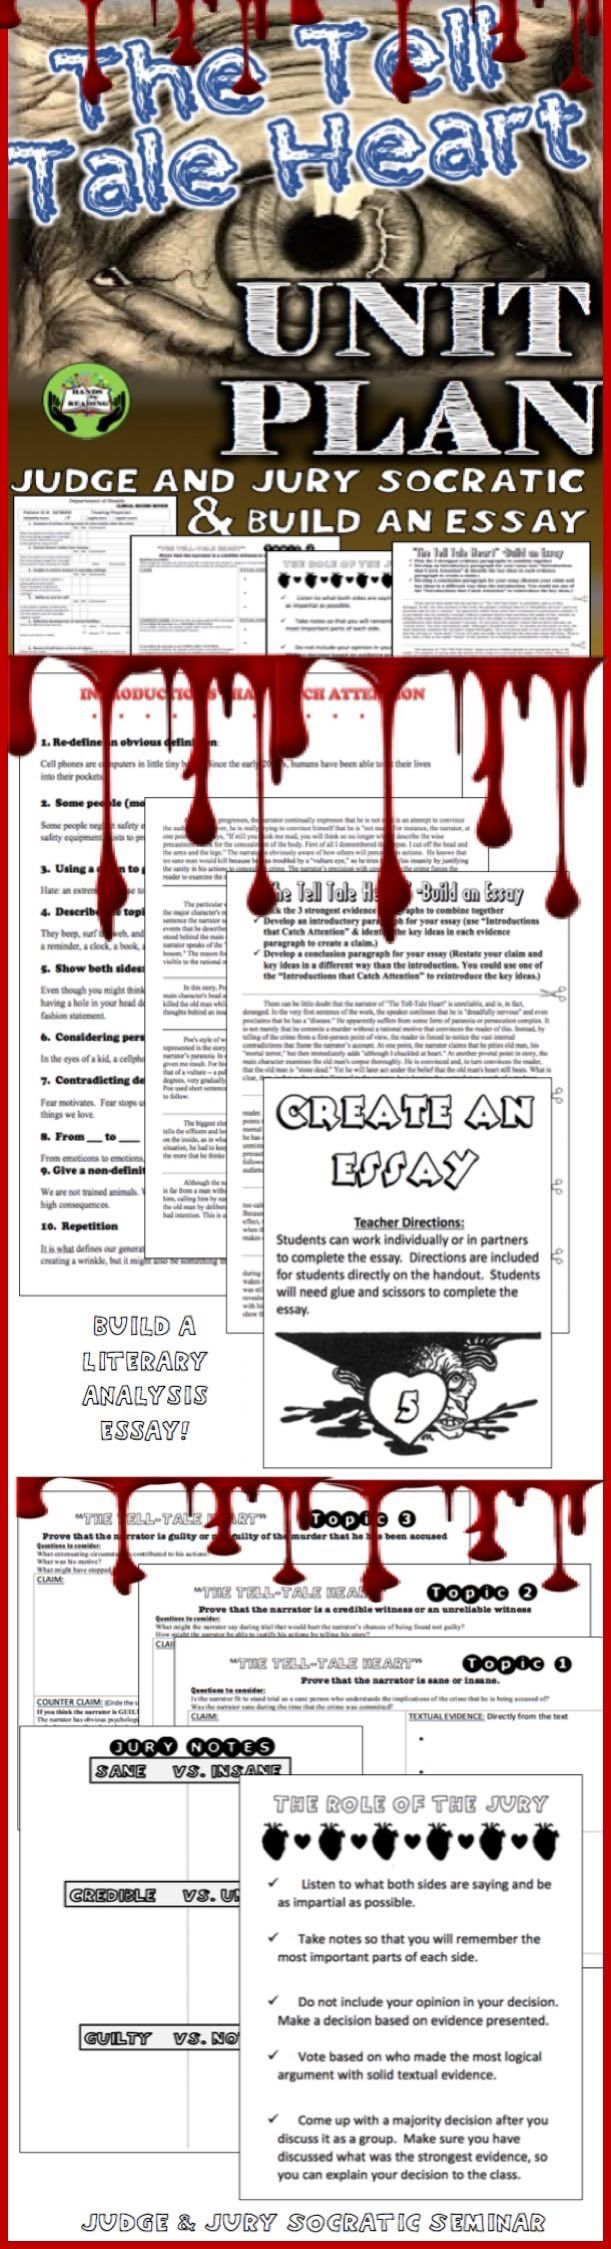 "CITING STRONG EVIDENCE IS MADE EASY WITH THIS UNIT FROM EDGAR ALLAN POE'S ""TELL TALE HEART."" NO PREP- JUST PRINT AND COPY. Throughout this unit, students will engage in analysis of text and development of strong evidence to present for the Judge and Jury Socratic Seminar.  In addition, The ""Create an Essay"" activity requires students to evaluate multiple evidence paragraphs to build three evidence paragraphs. Then, include a connecting introduction and conclusion."